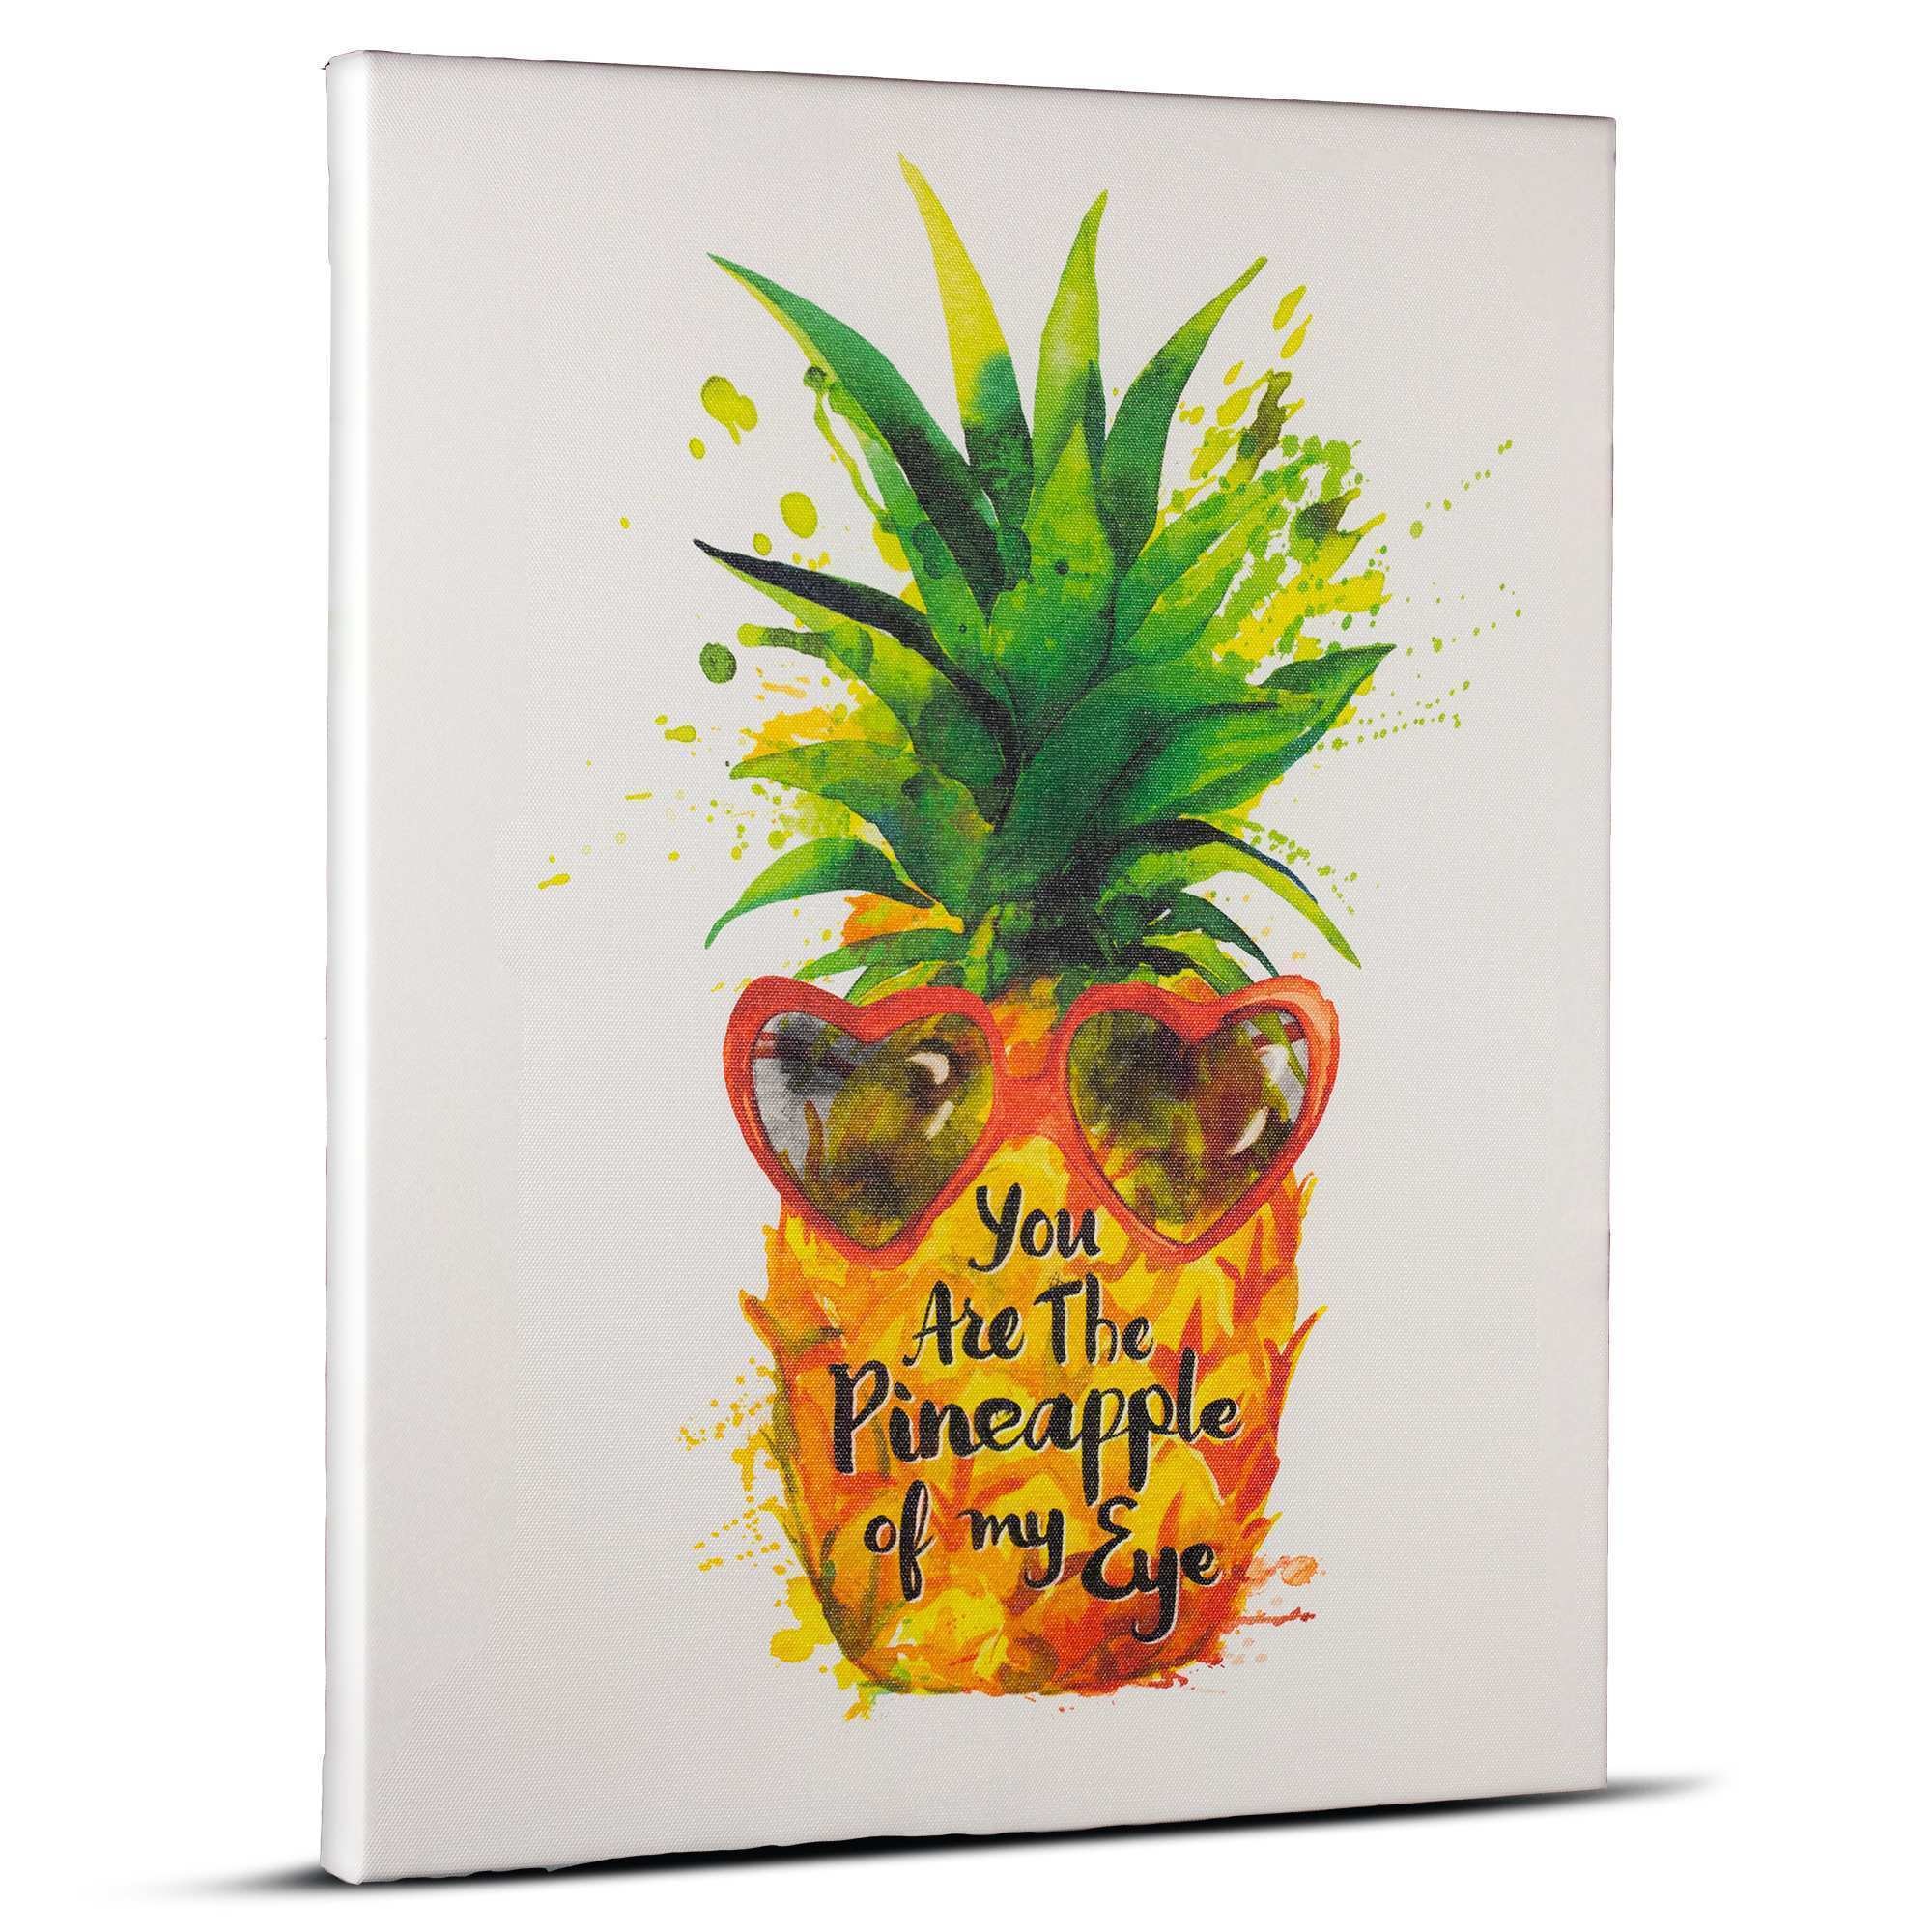 2000x2000 Pineapple Painting Fresh Pineapple Watercolor Painting Painting